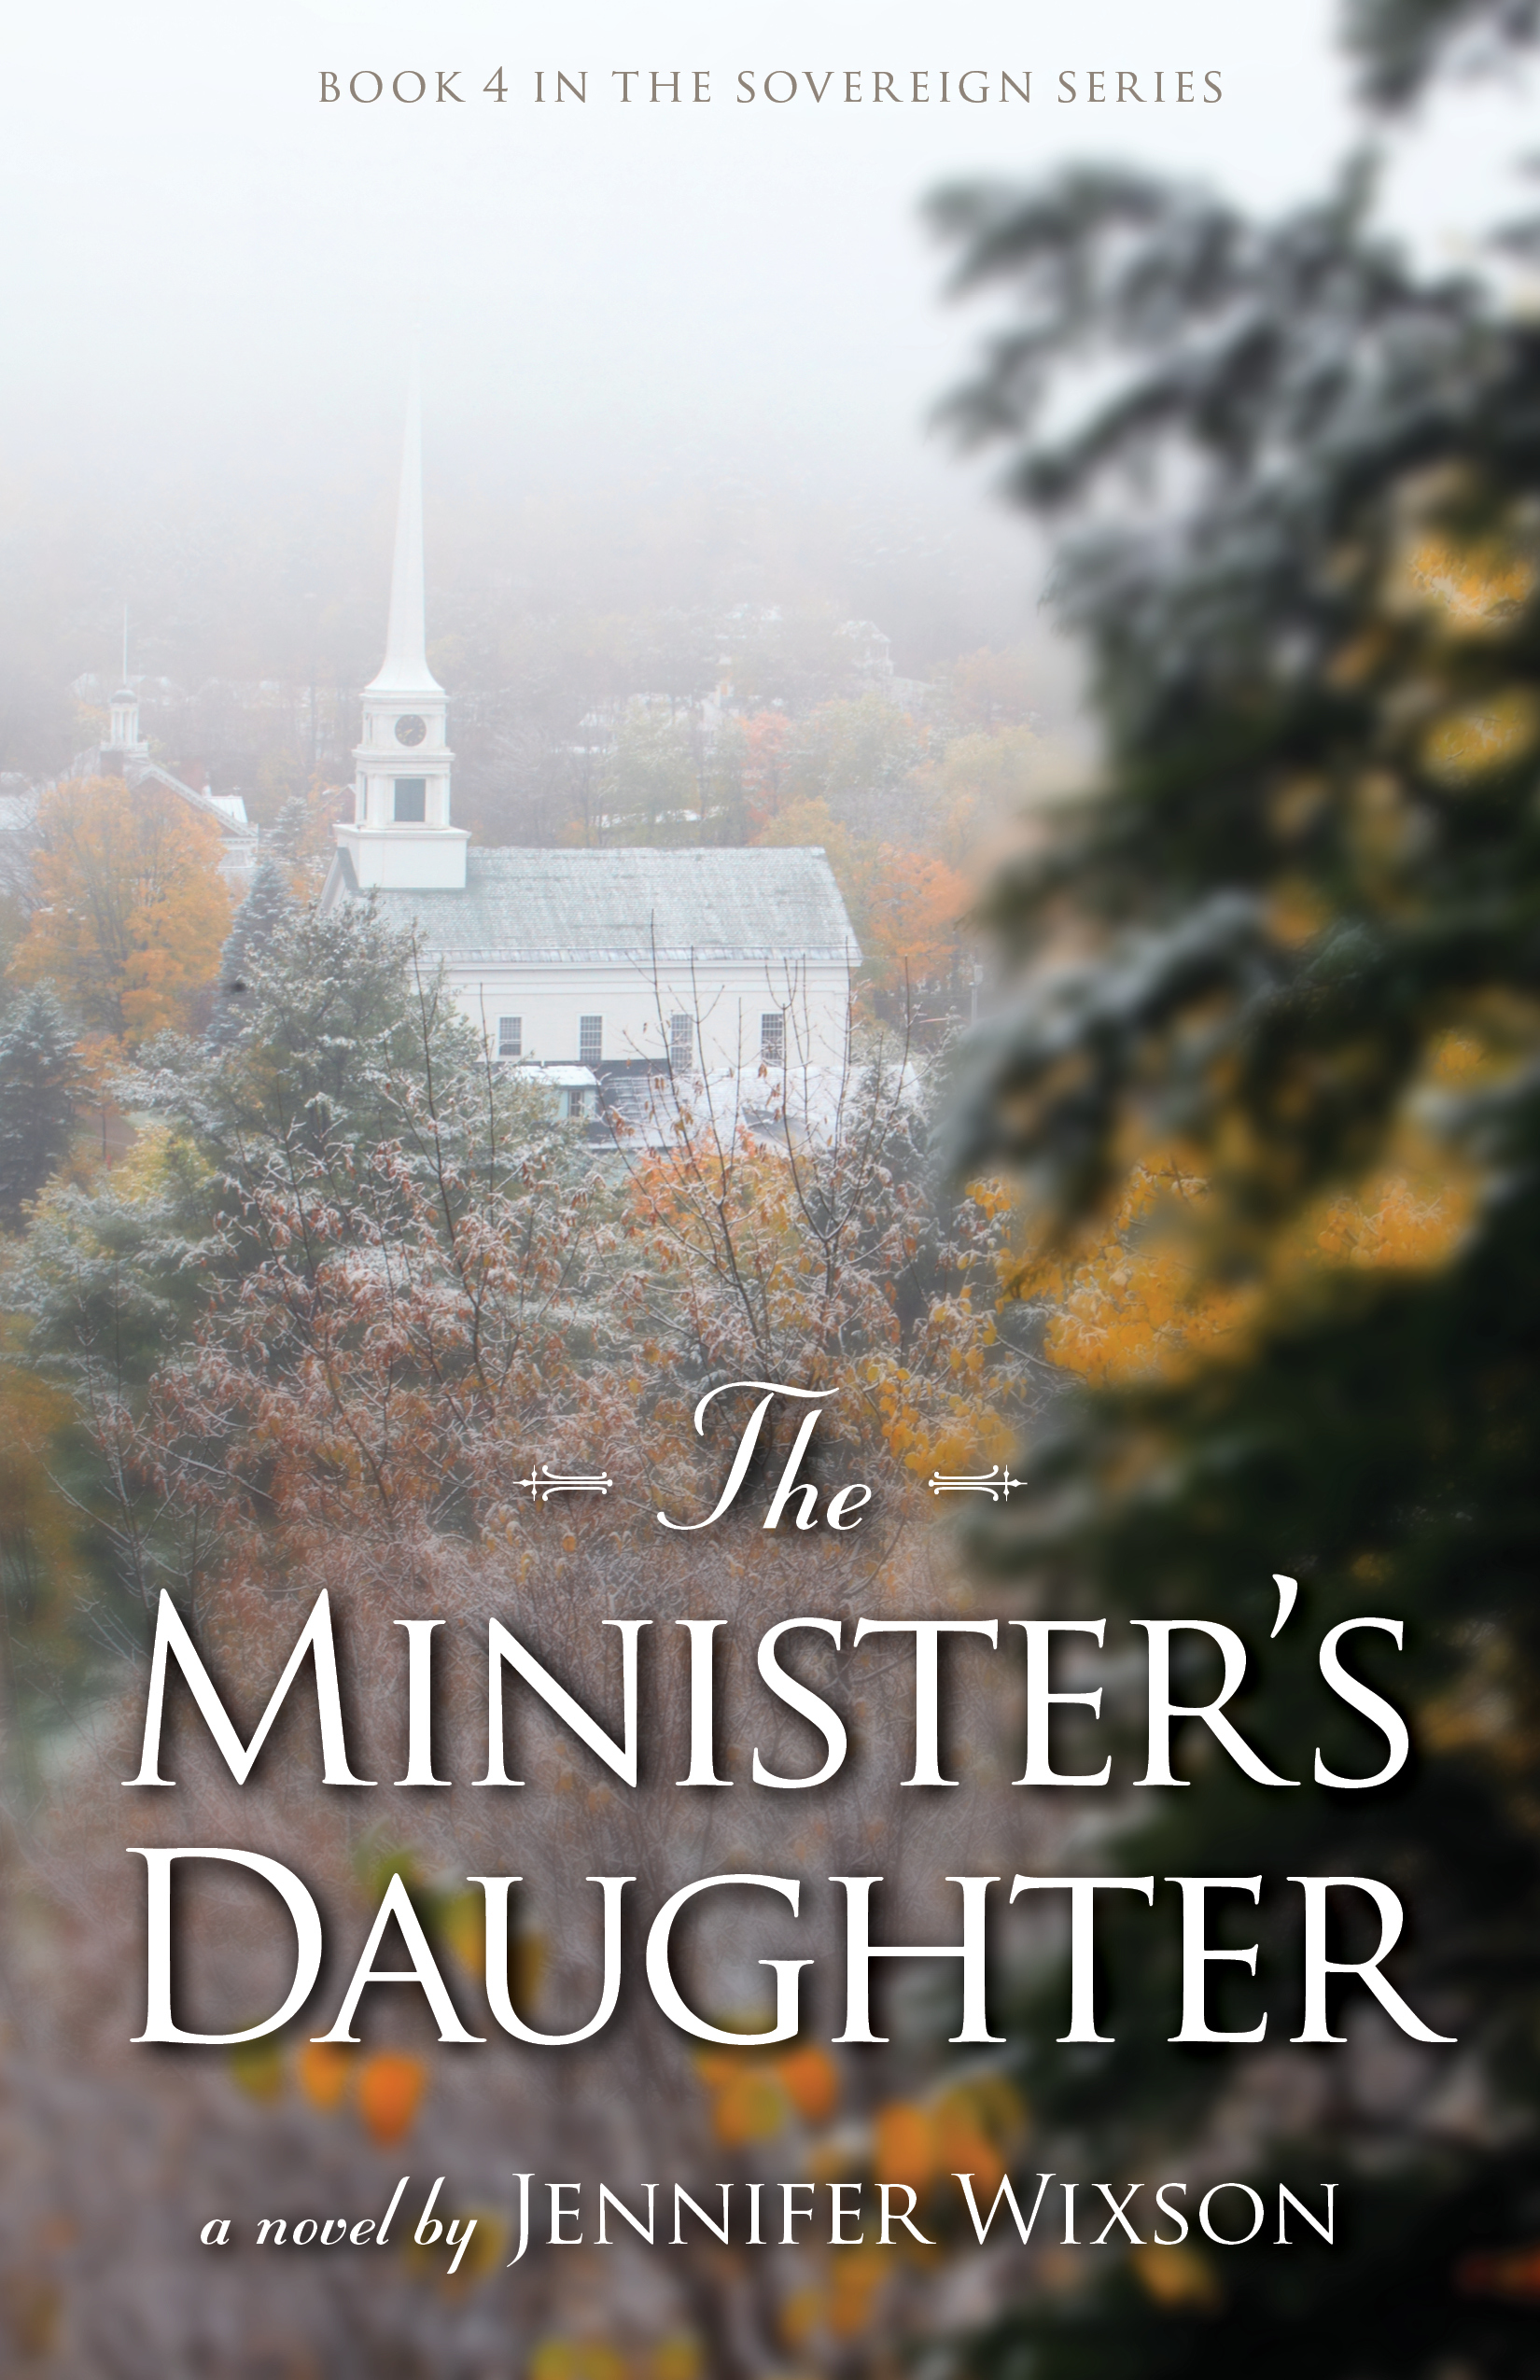 The Ministers Daughter (Book 4 in The Sovereign Series) Jennifer Wixson